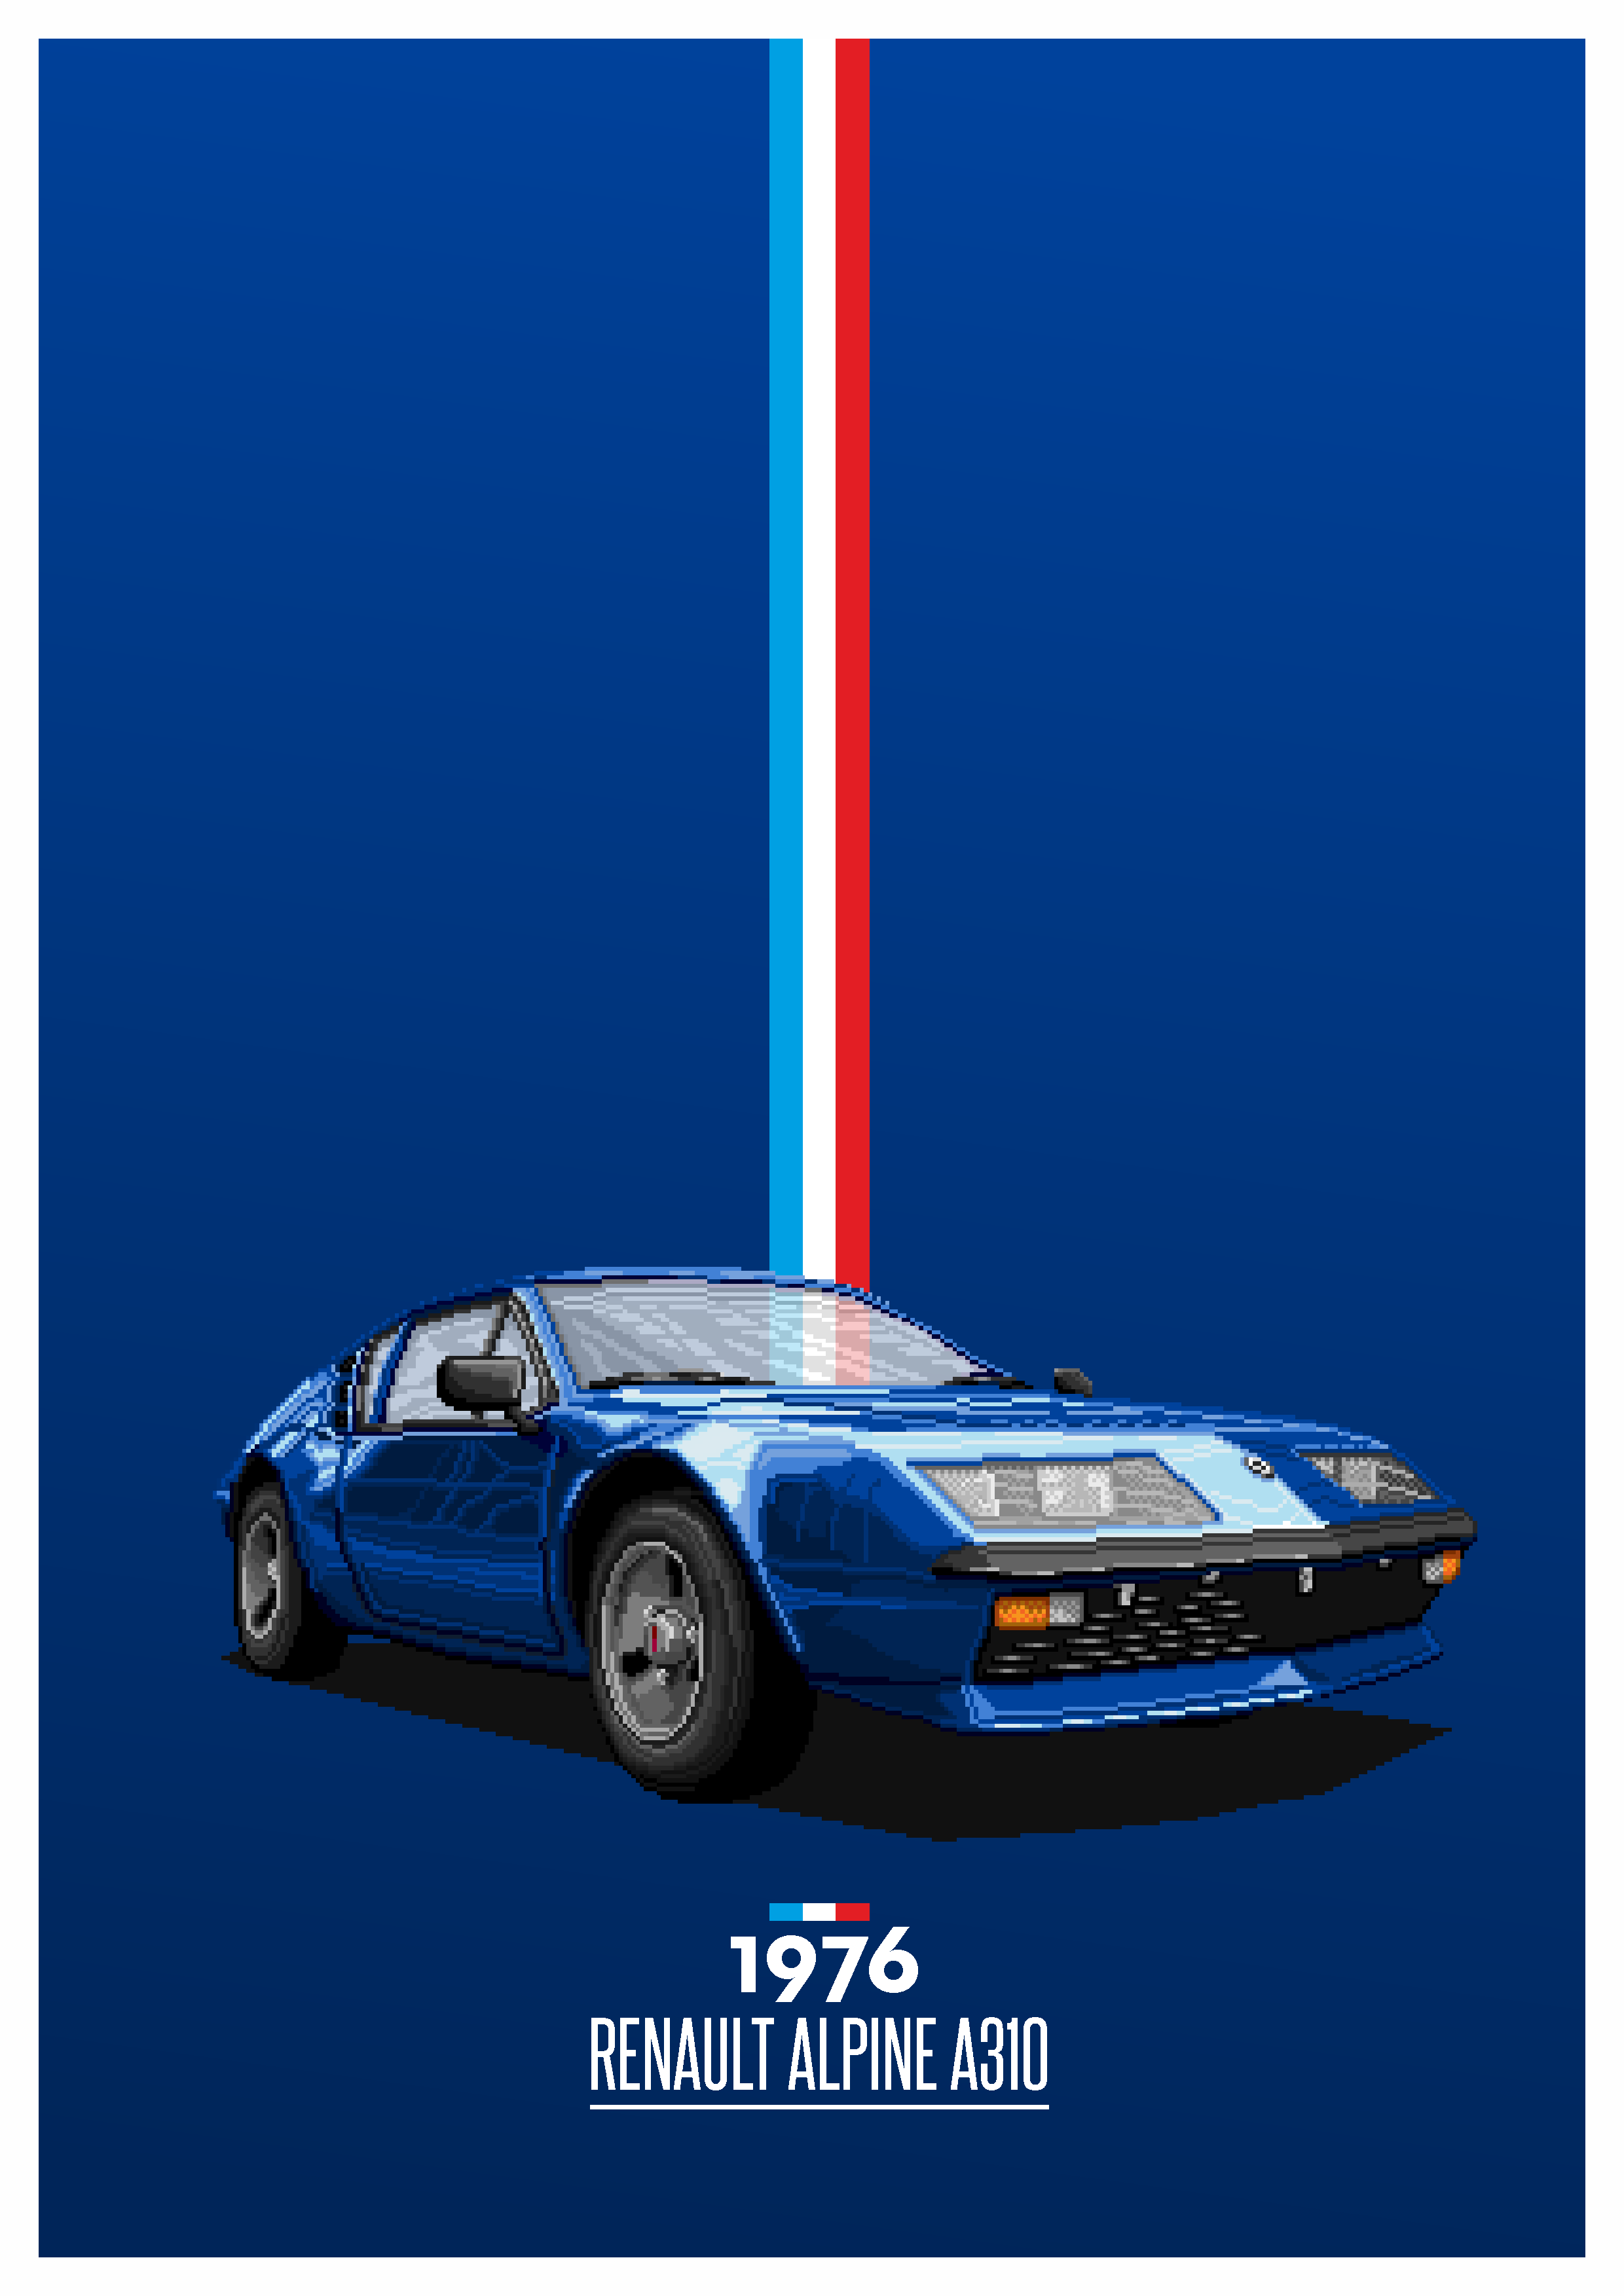 1976 Pixel Handcrafted Renault Alpine A310 1976 French Cars